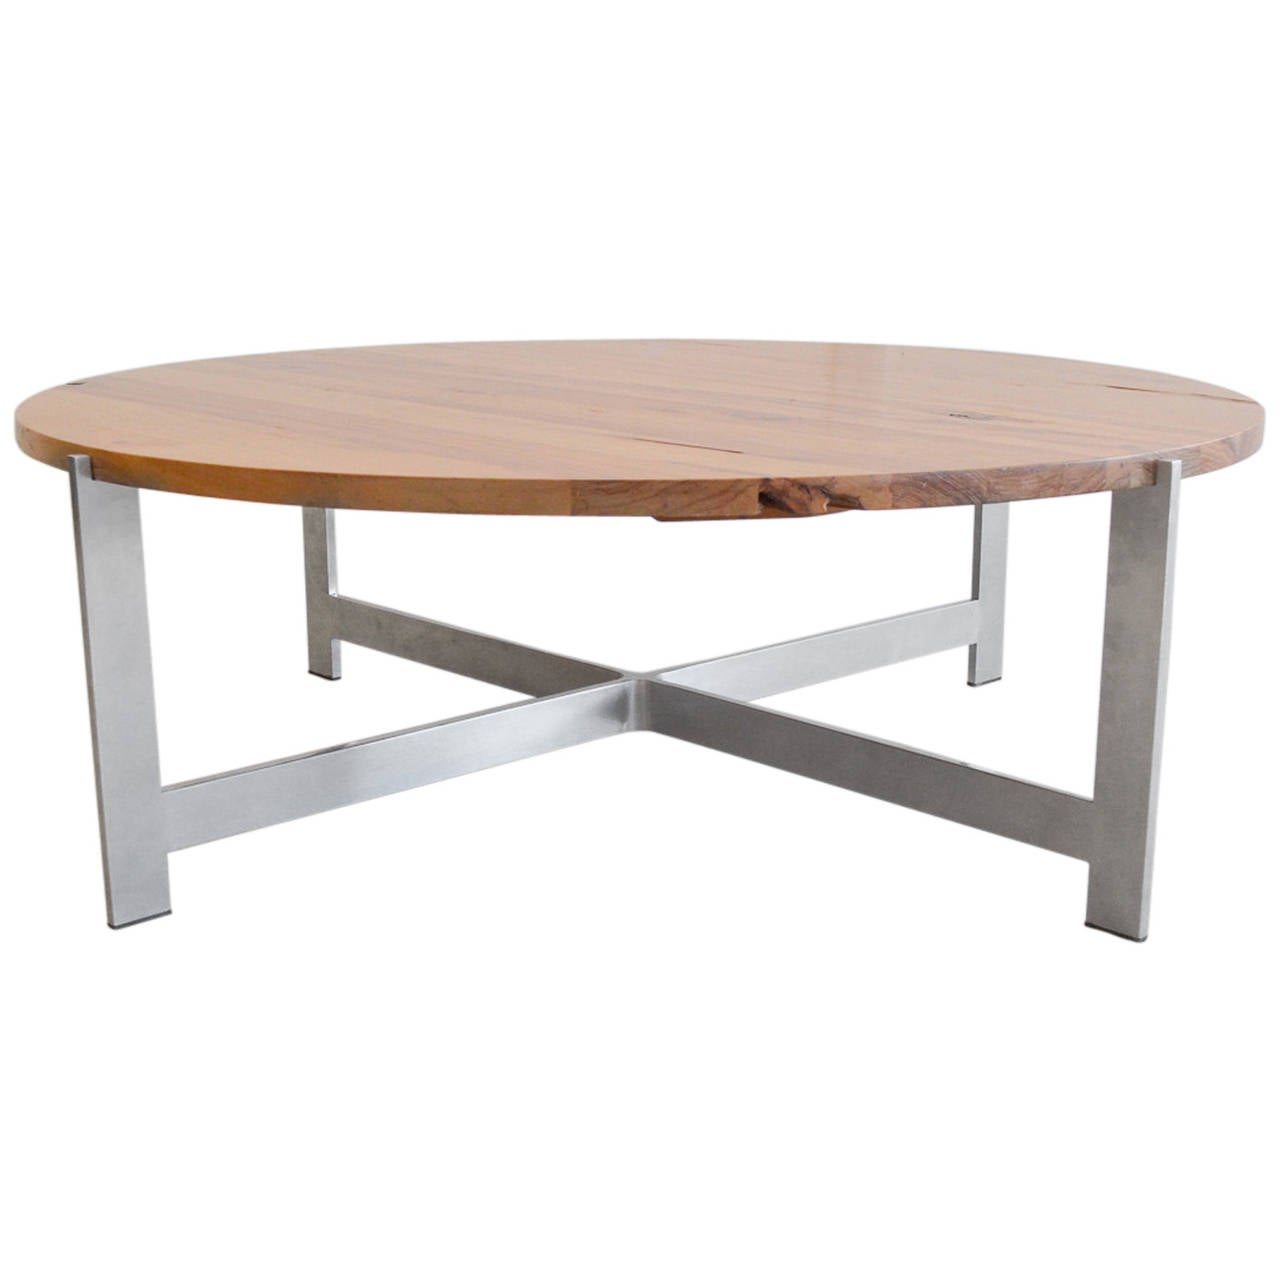 Round wood coffee table with aluminum x base at 1stdibs Round coffee tables